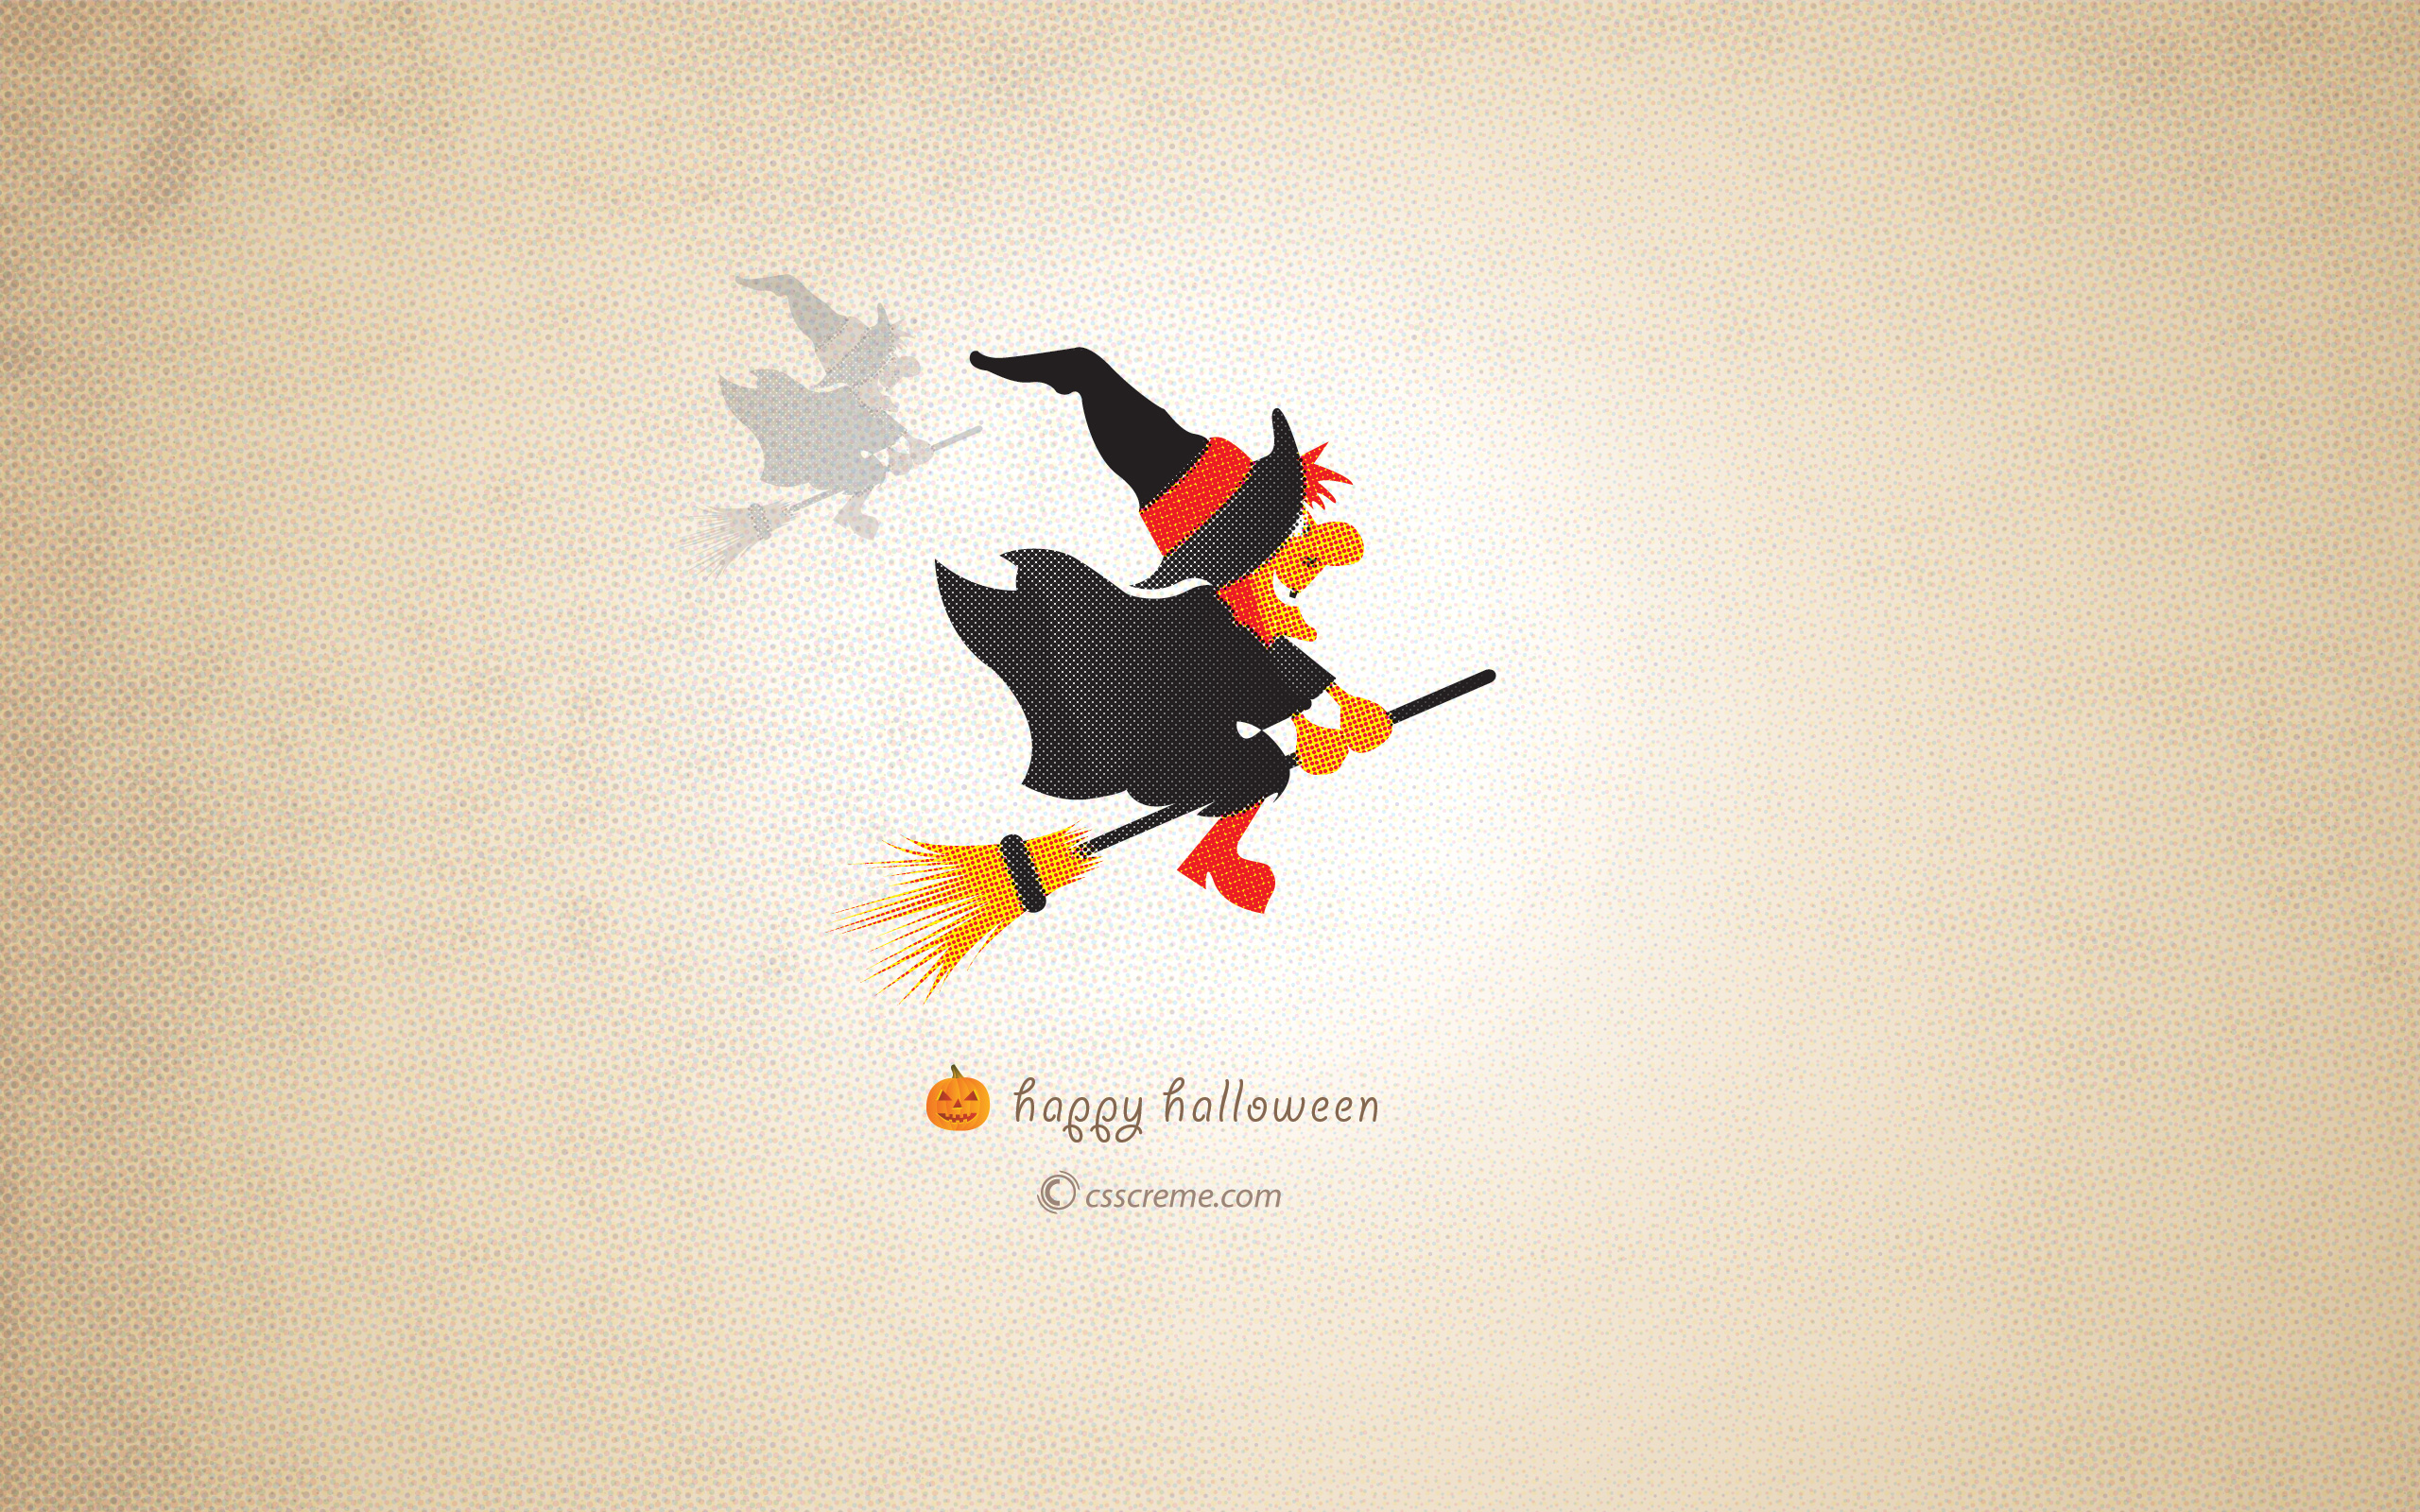 Halloween Witch Backgrounds Is Cool Wallpapers